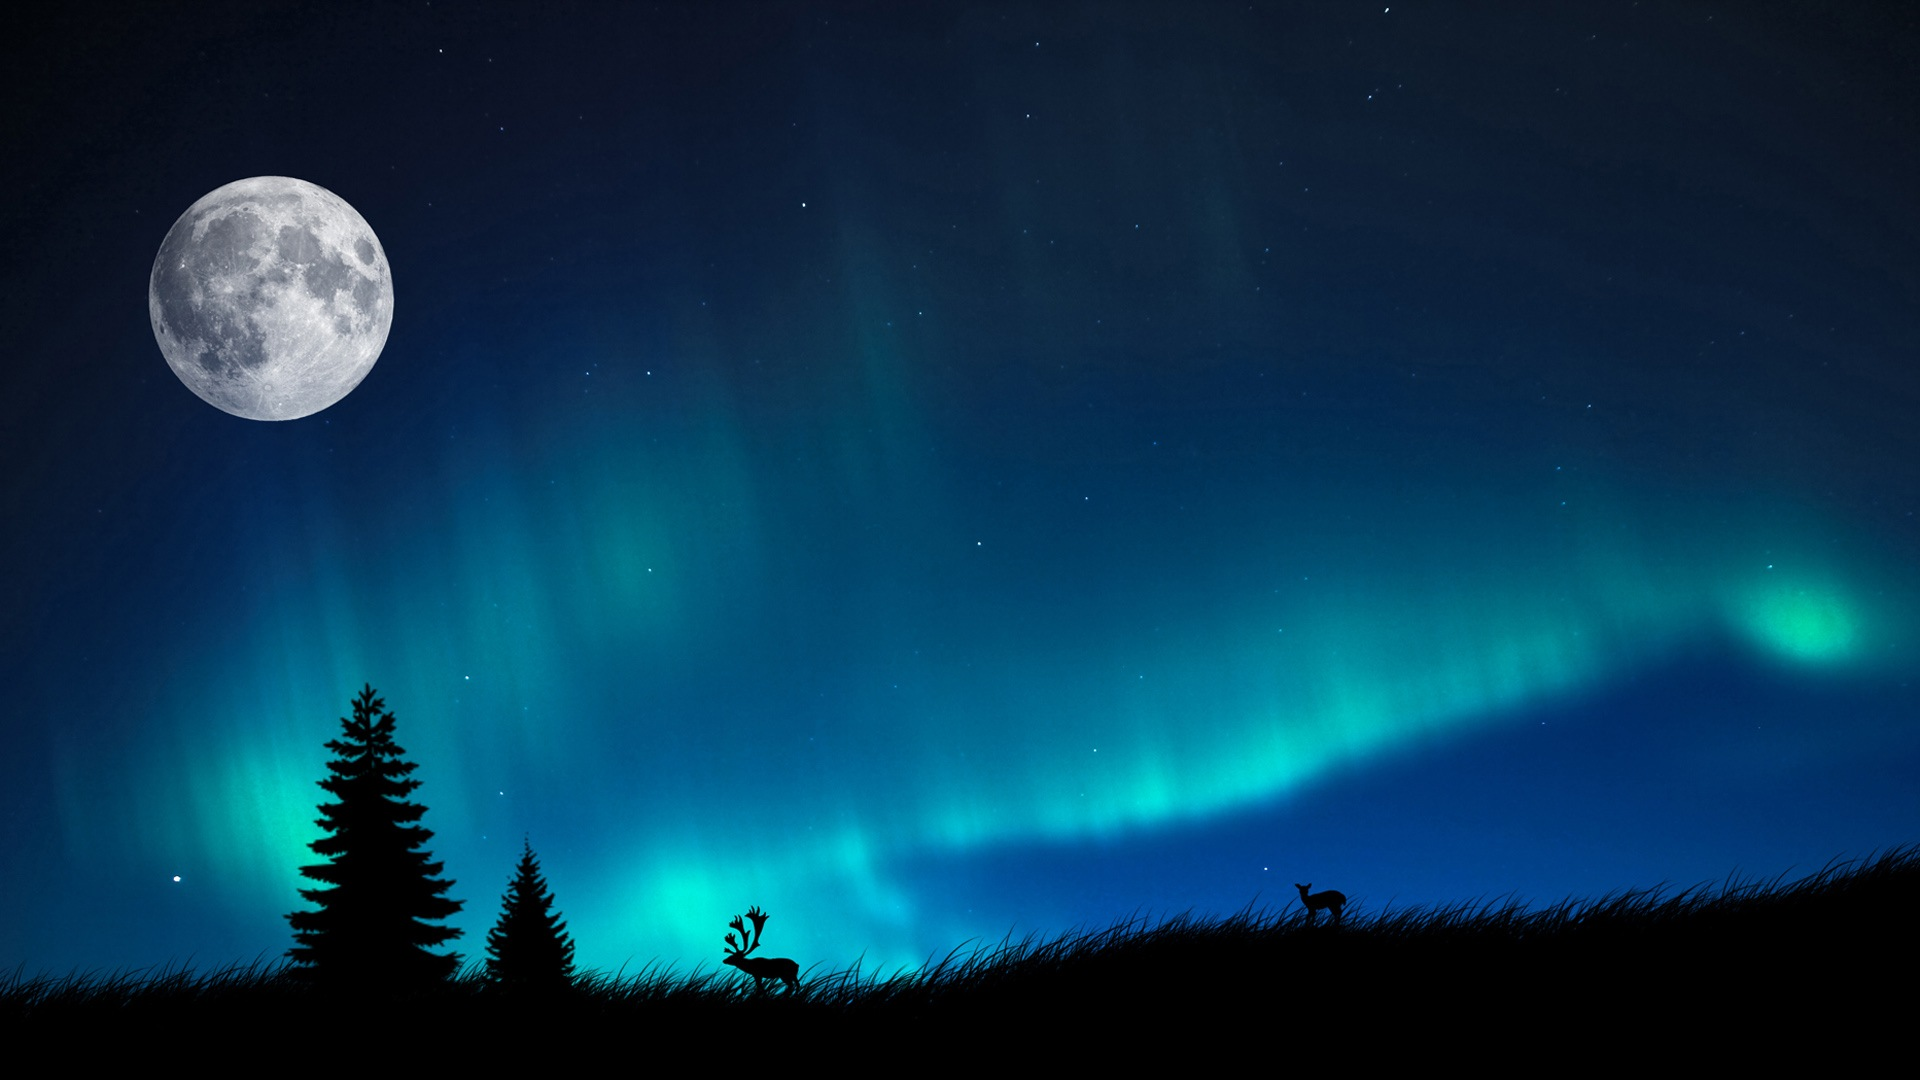 download northern lights 21160 1920x1080 px high definition wallpaper